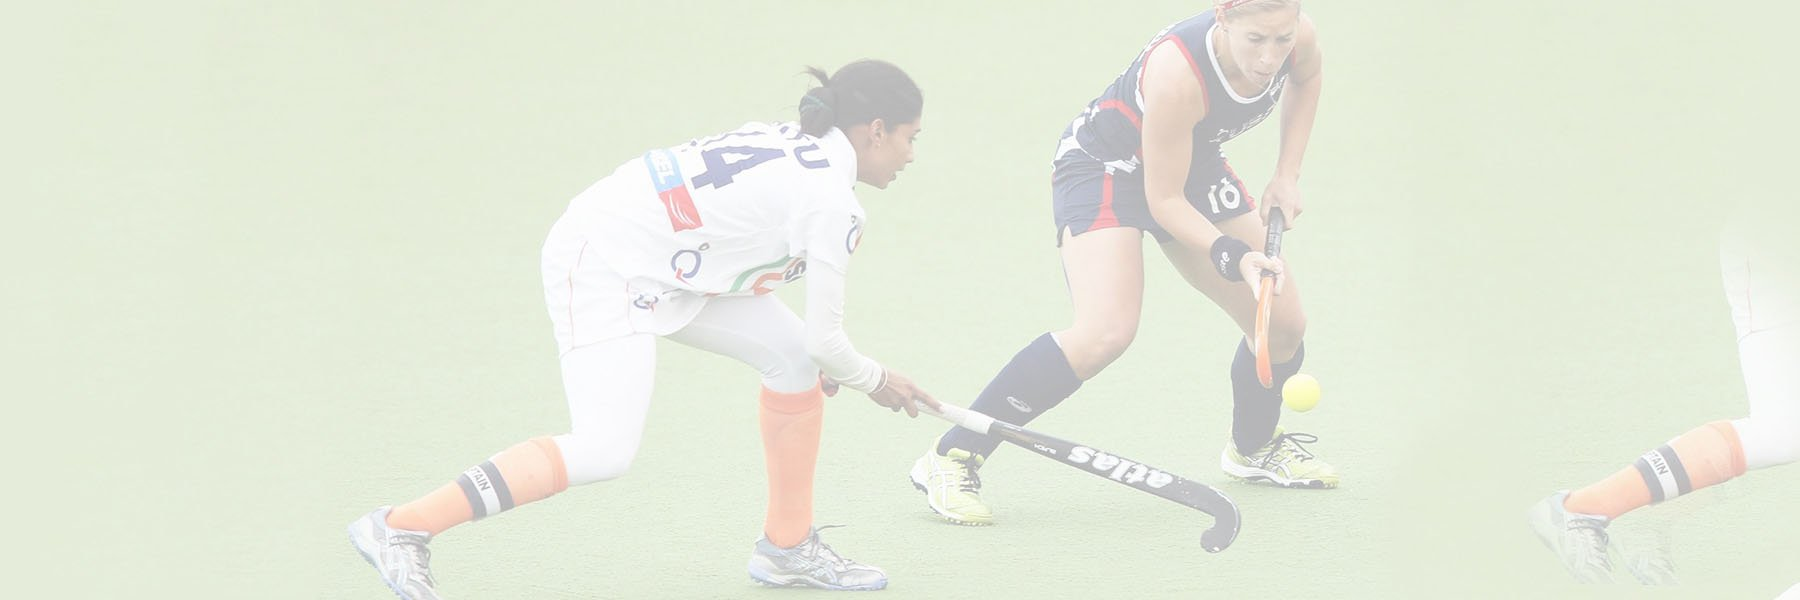 field hockey club management software